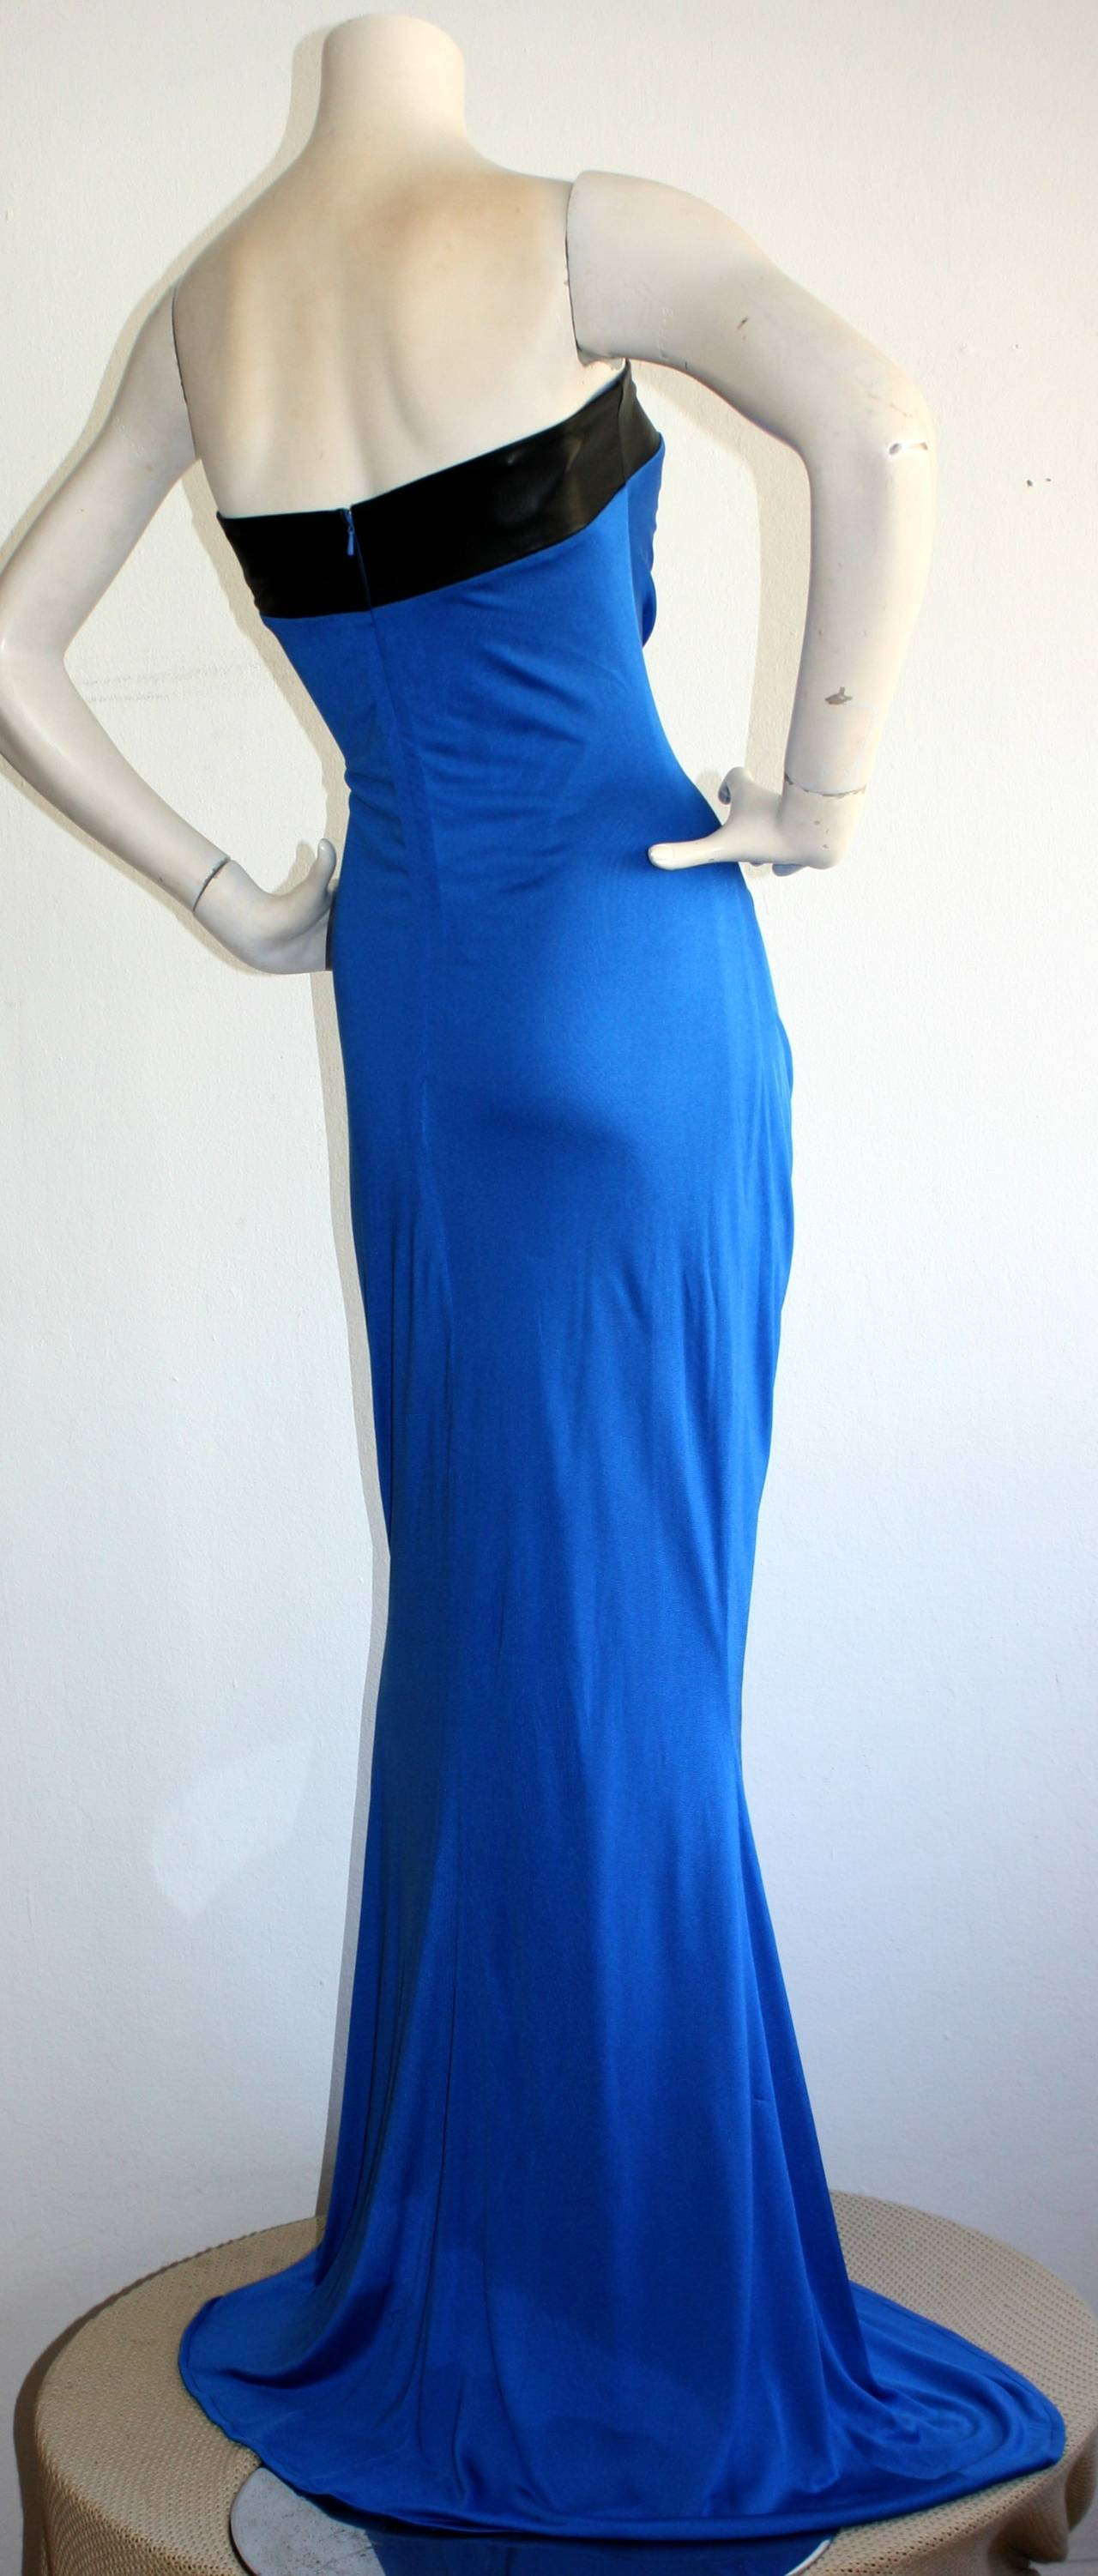 Ivana Trump's Lloyd Klein Couture Blue Silk Jersey & Black Leather Grecian Gown In Excellent Condition For Sale In San Francisco, CA